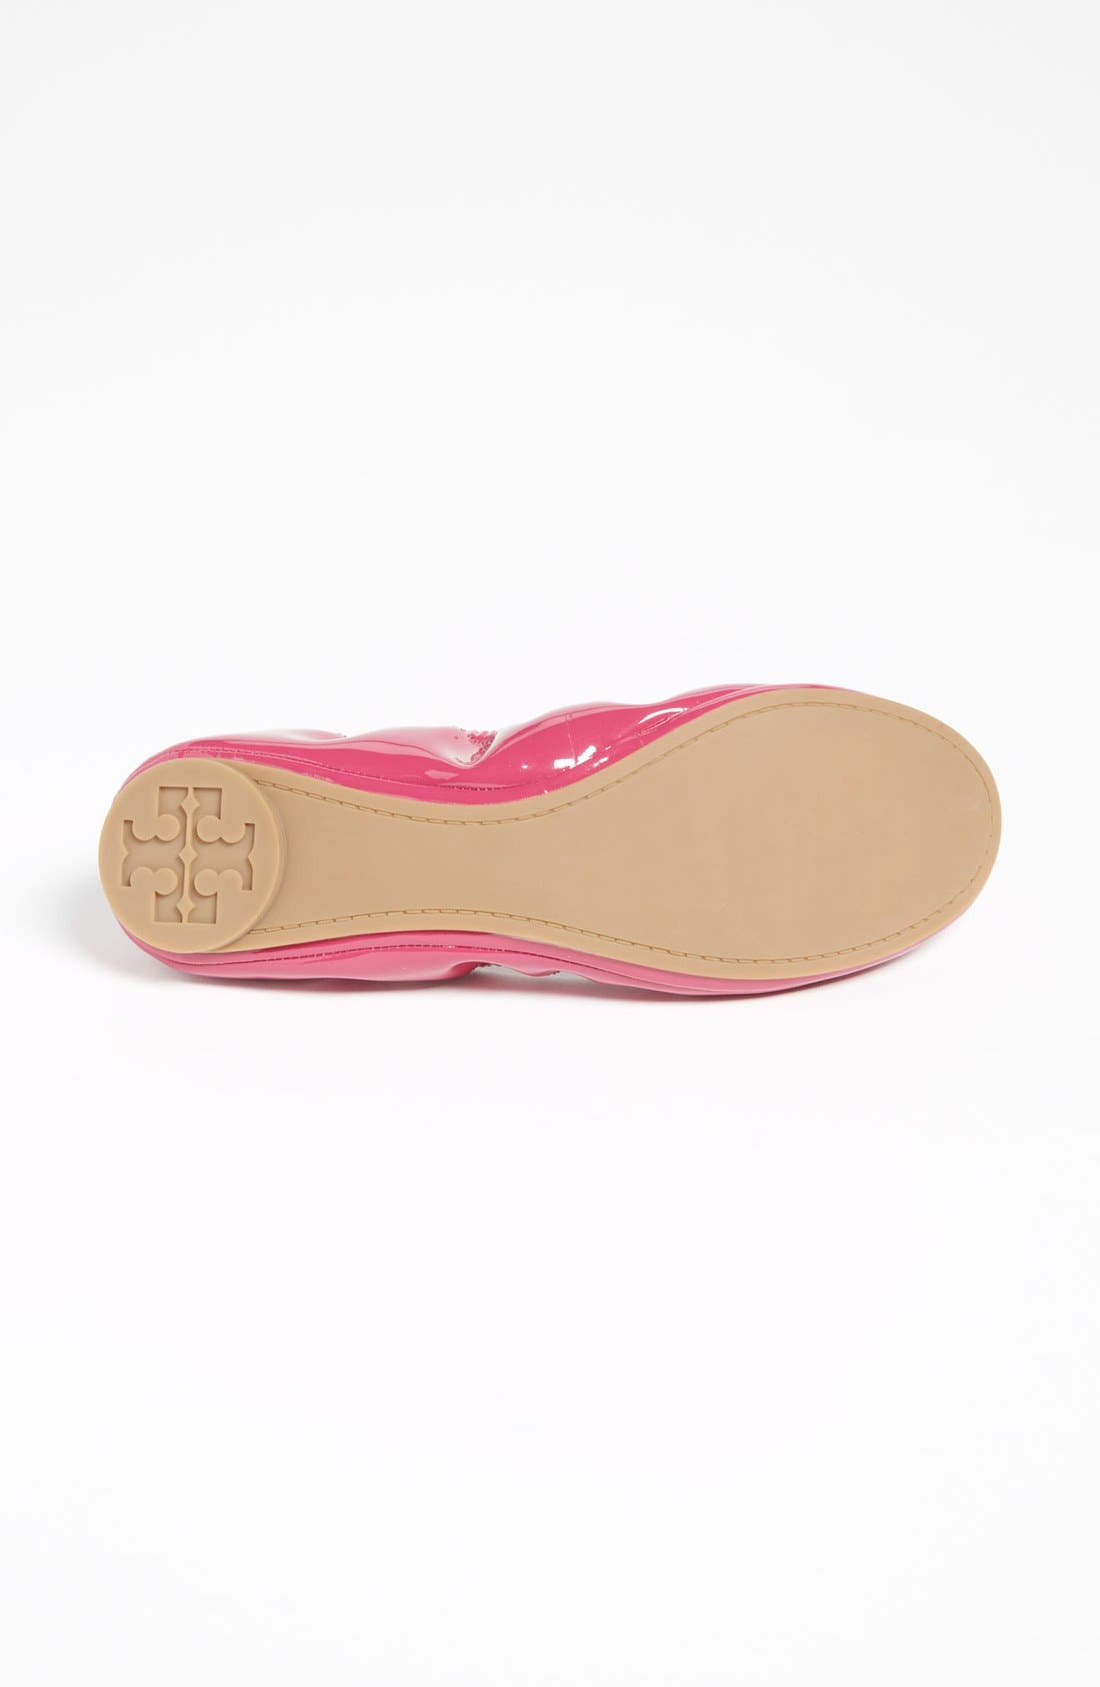 Alternate Image 3  - Tory Burch 'Eddie' Flat